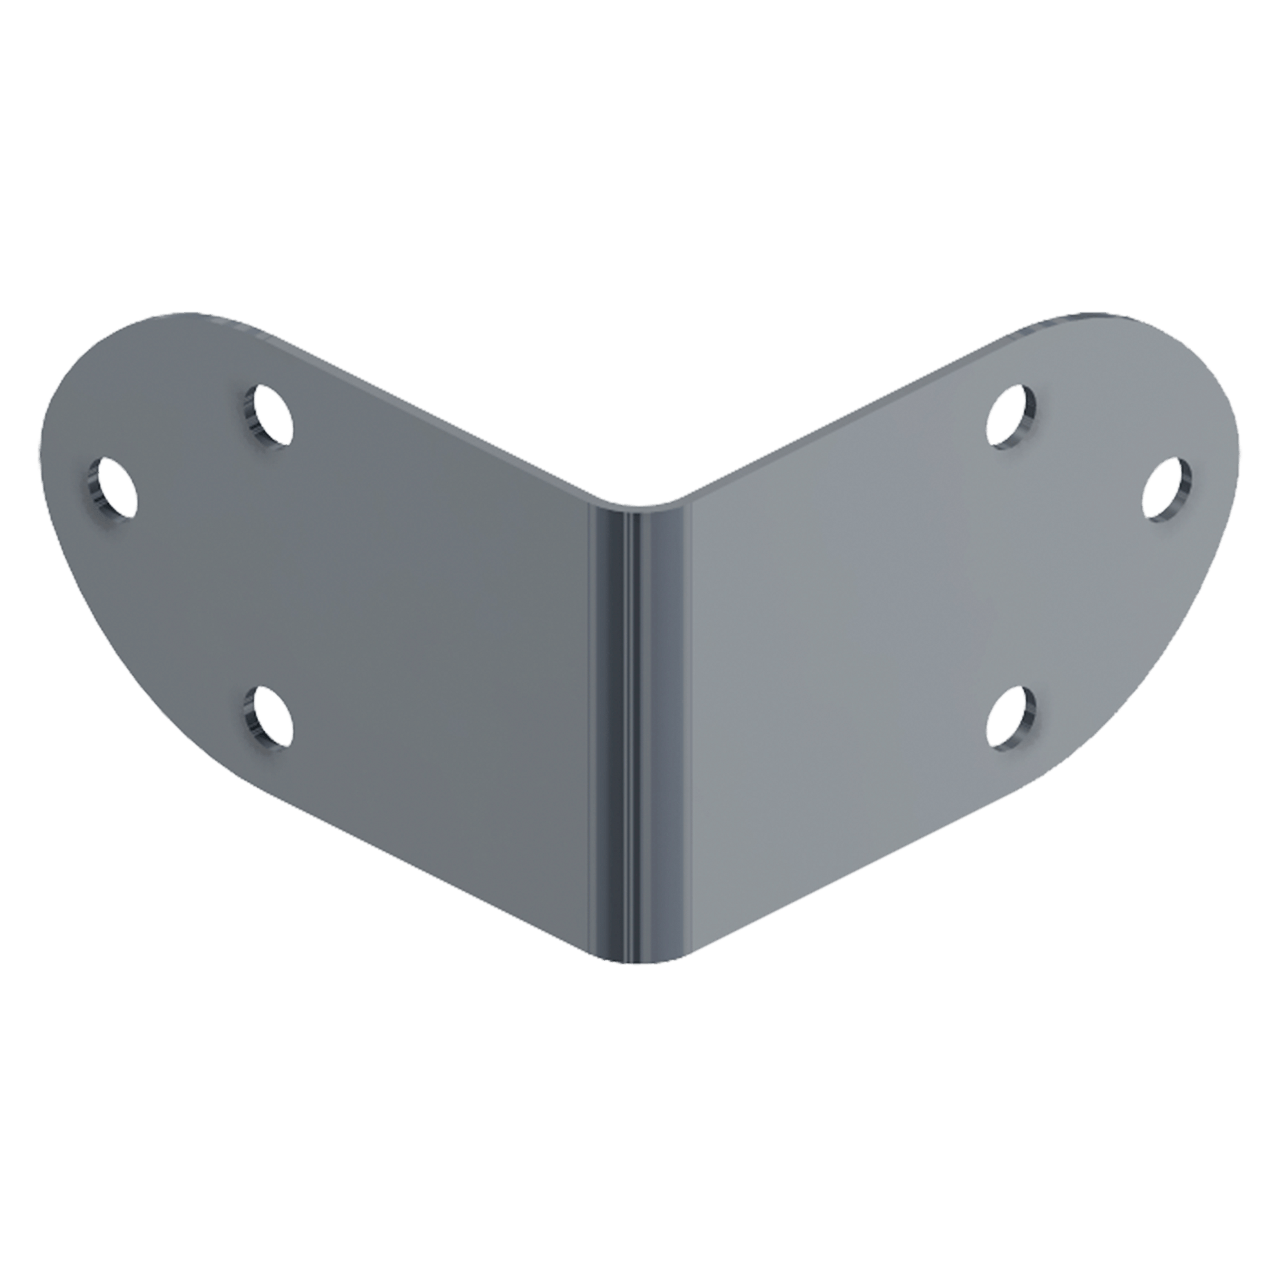 Six-Hole Clamp, 3/4 view